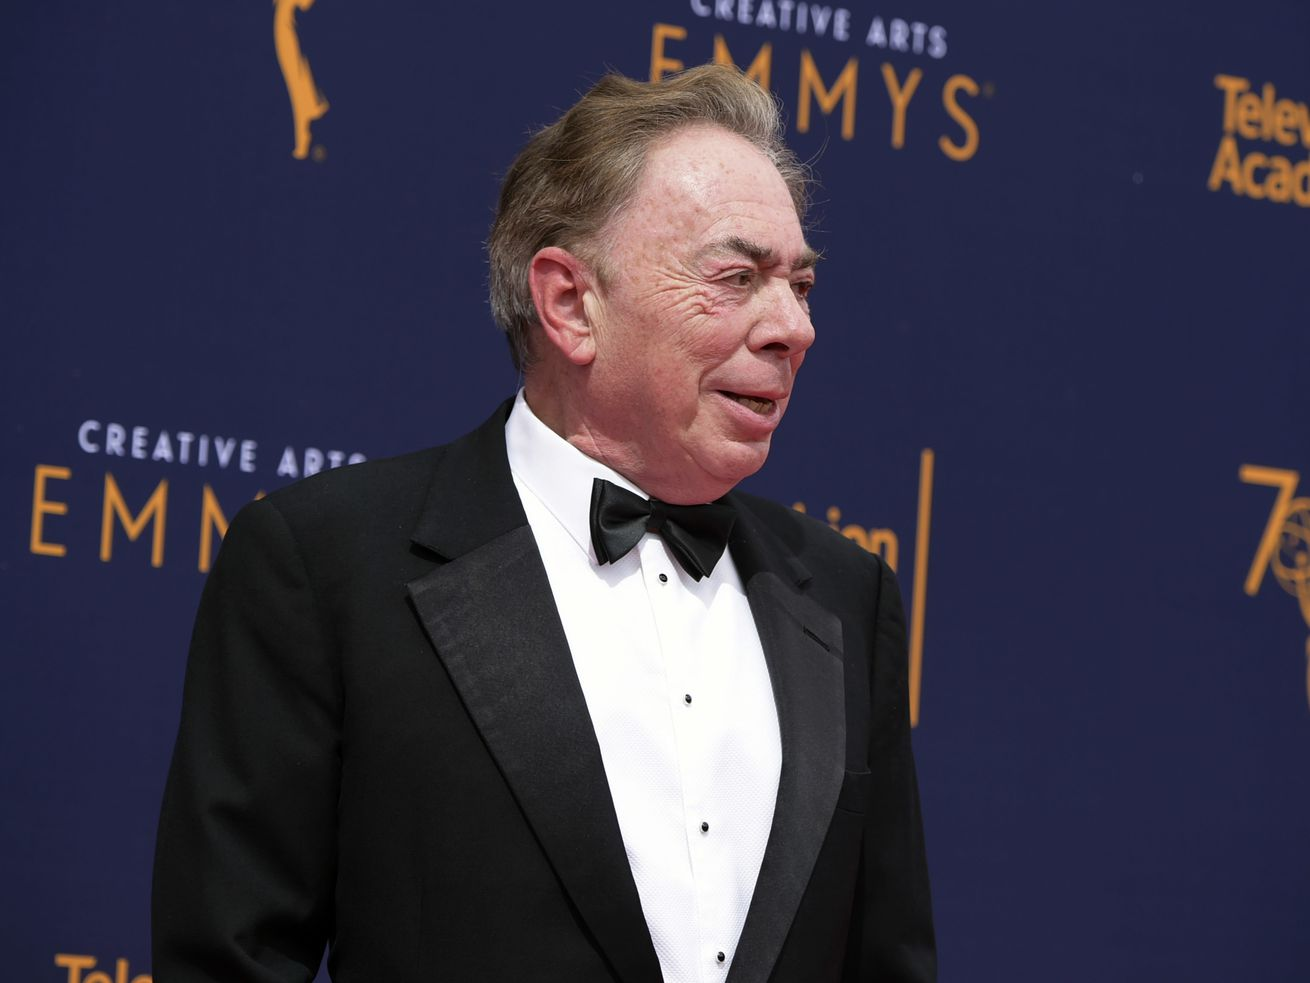 Andrew Lloyd Webber just took an experimental coronavirus vaccine: 'I'll do anything to get theatres large and small open again'